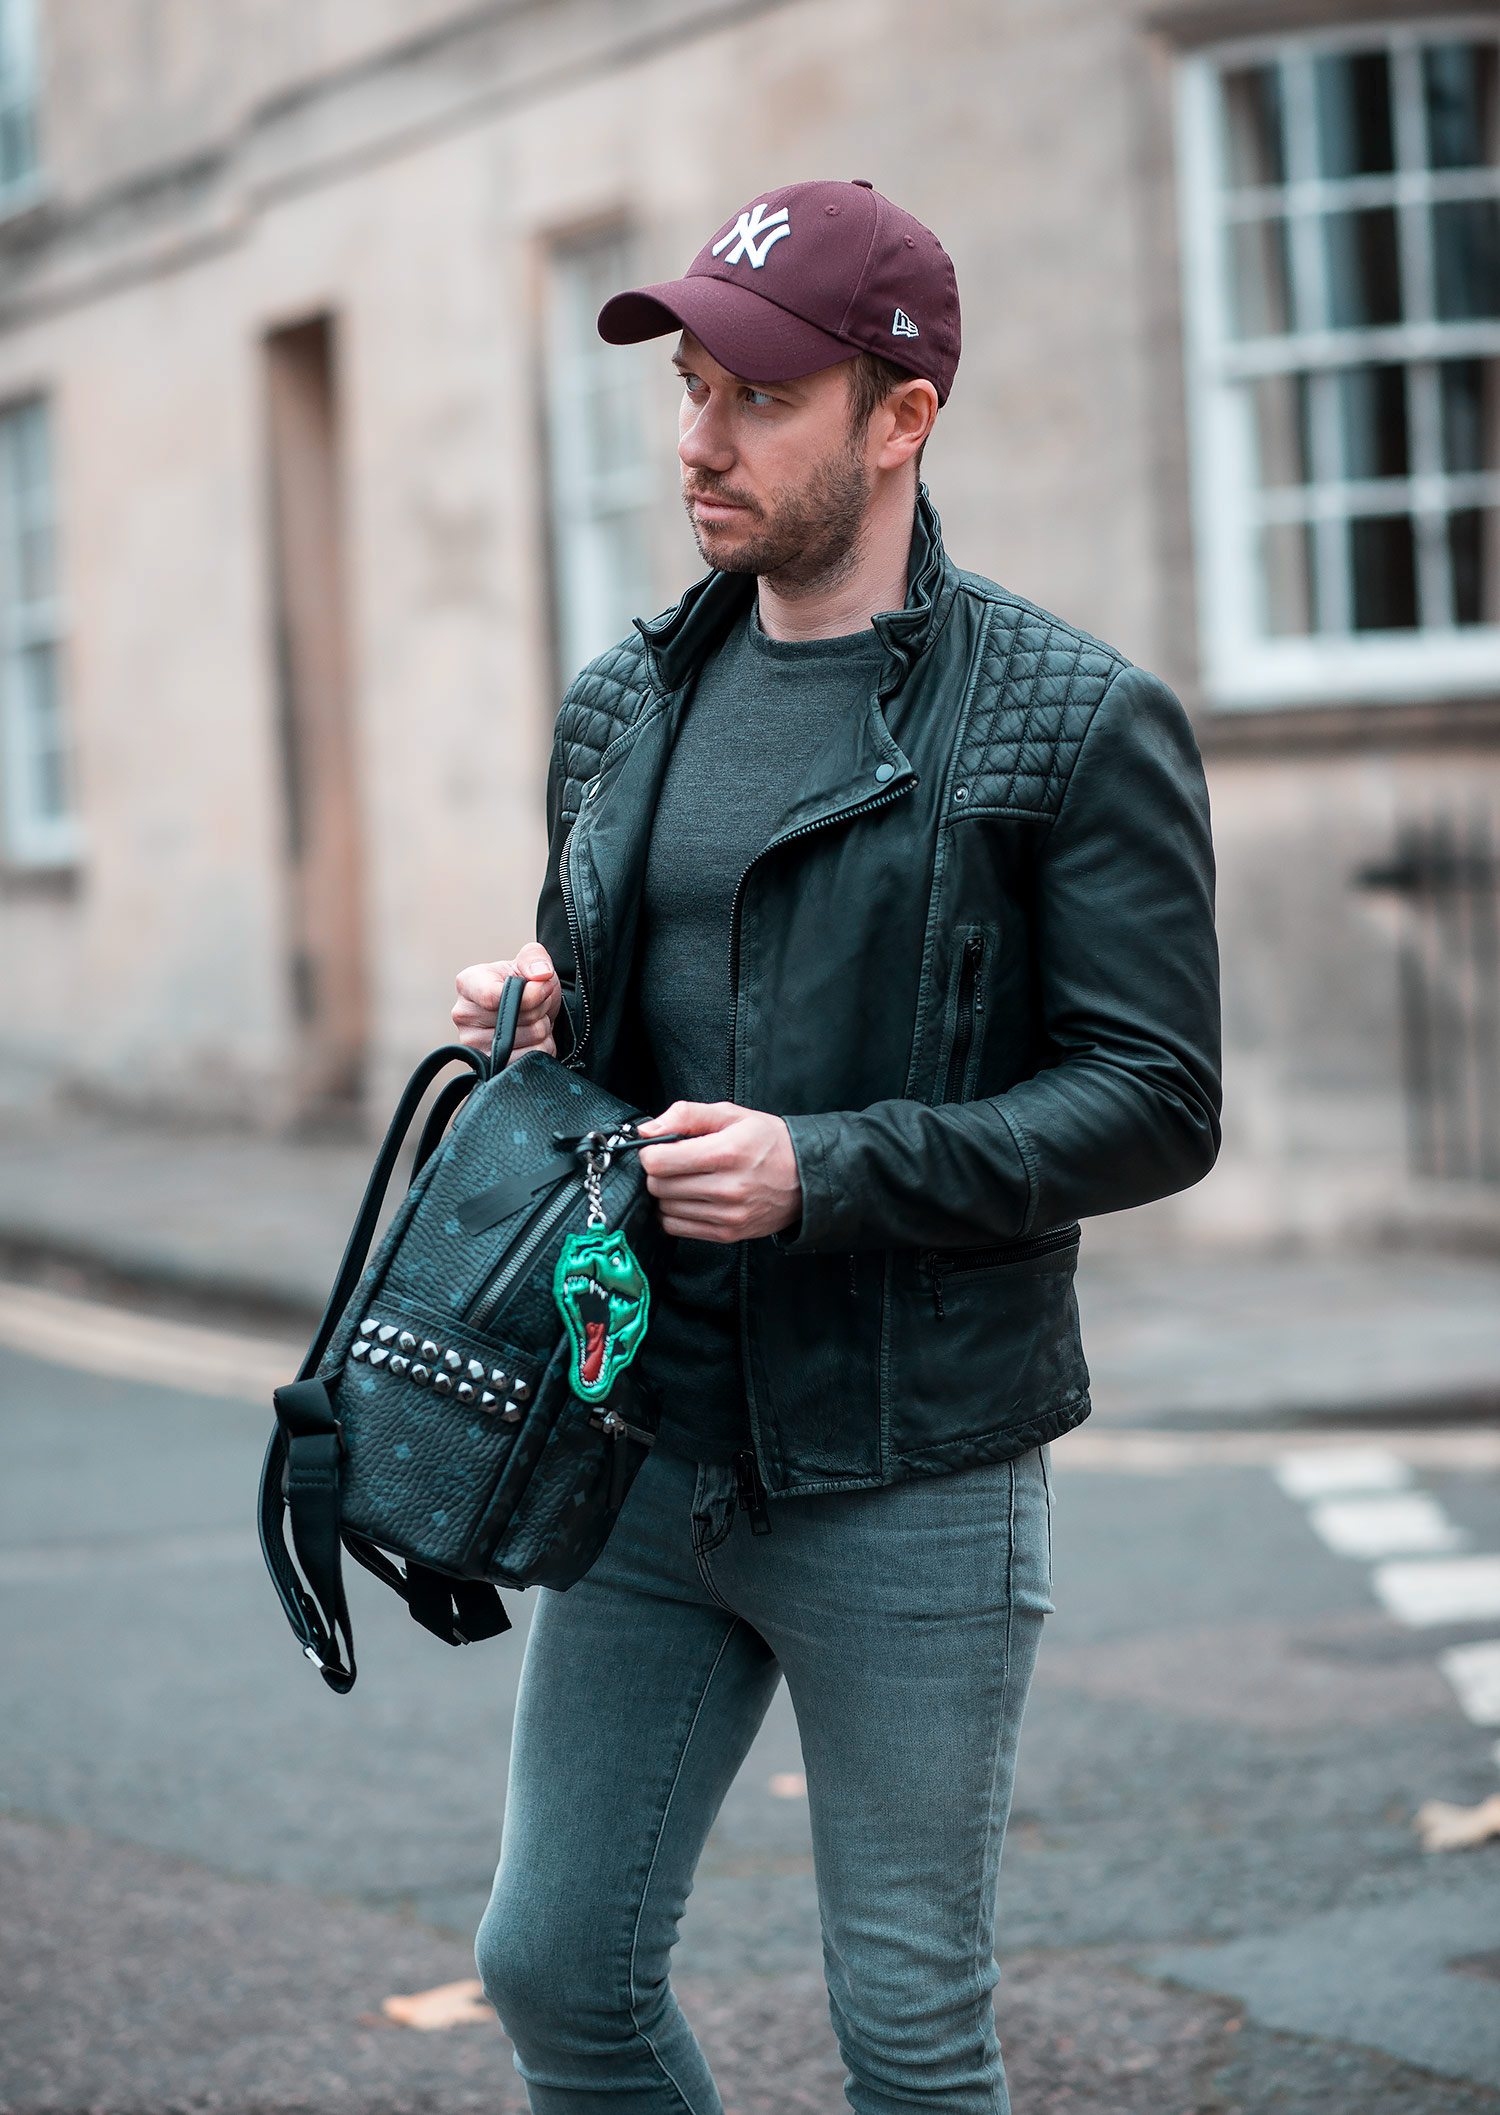 Allsaints Cargo Leather Jacket And Mcm Backpack Outfit